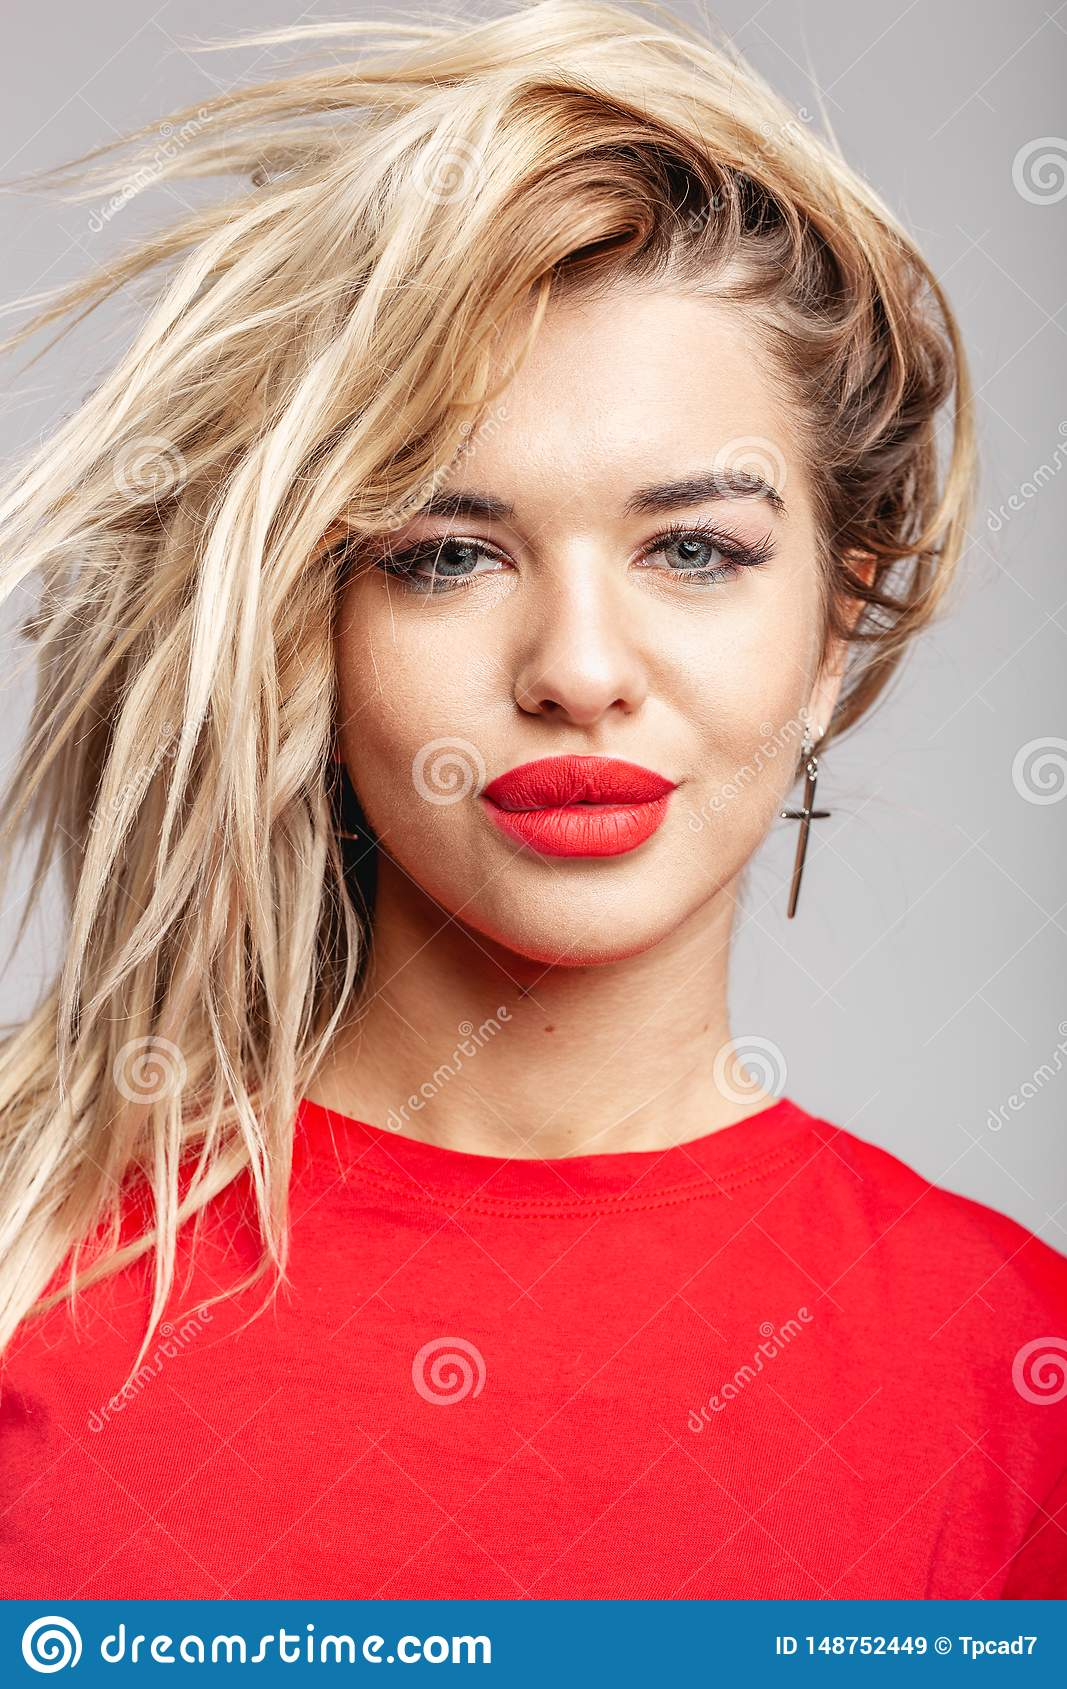 Young blond girl with a red lipstick short in a red t-shirt poses staying against a wall in the studio